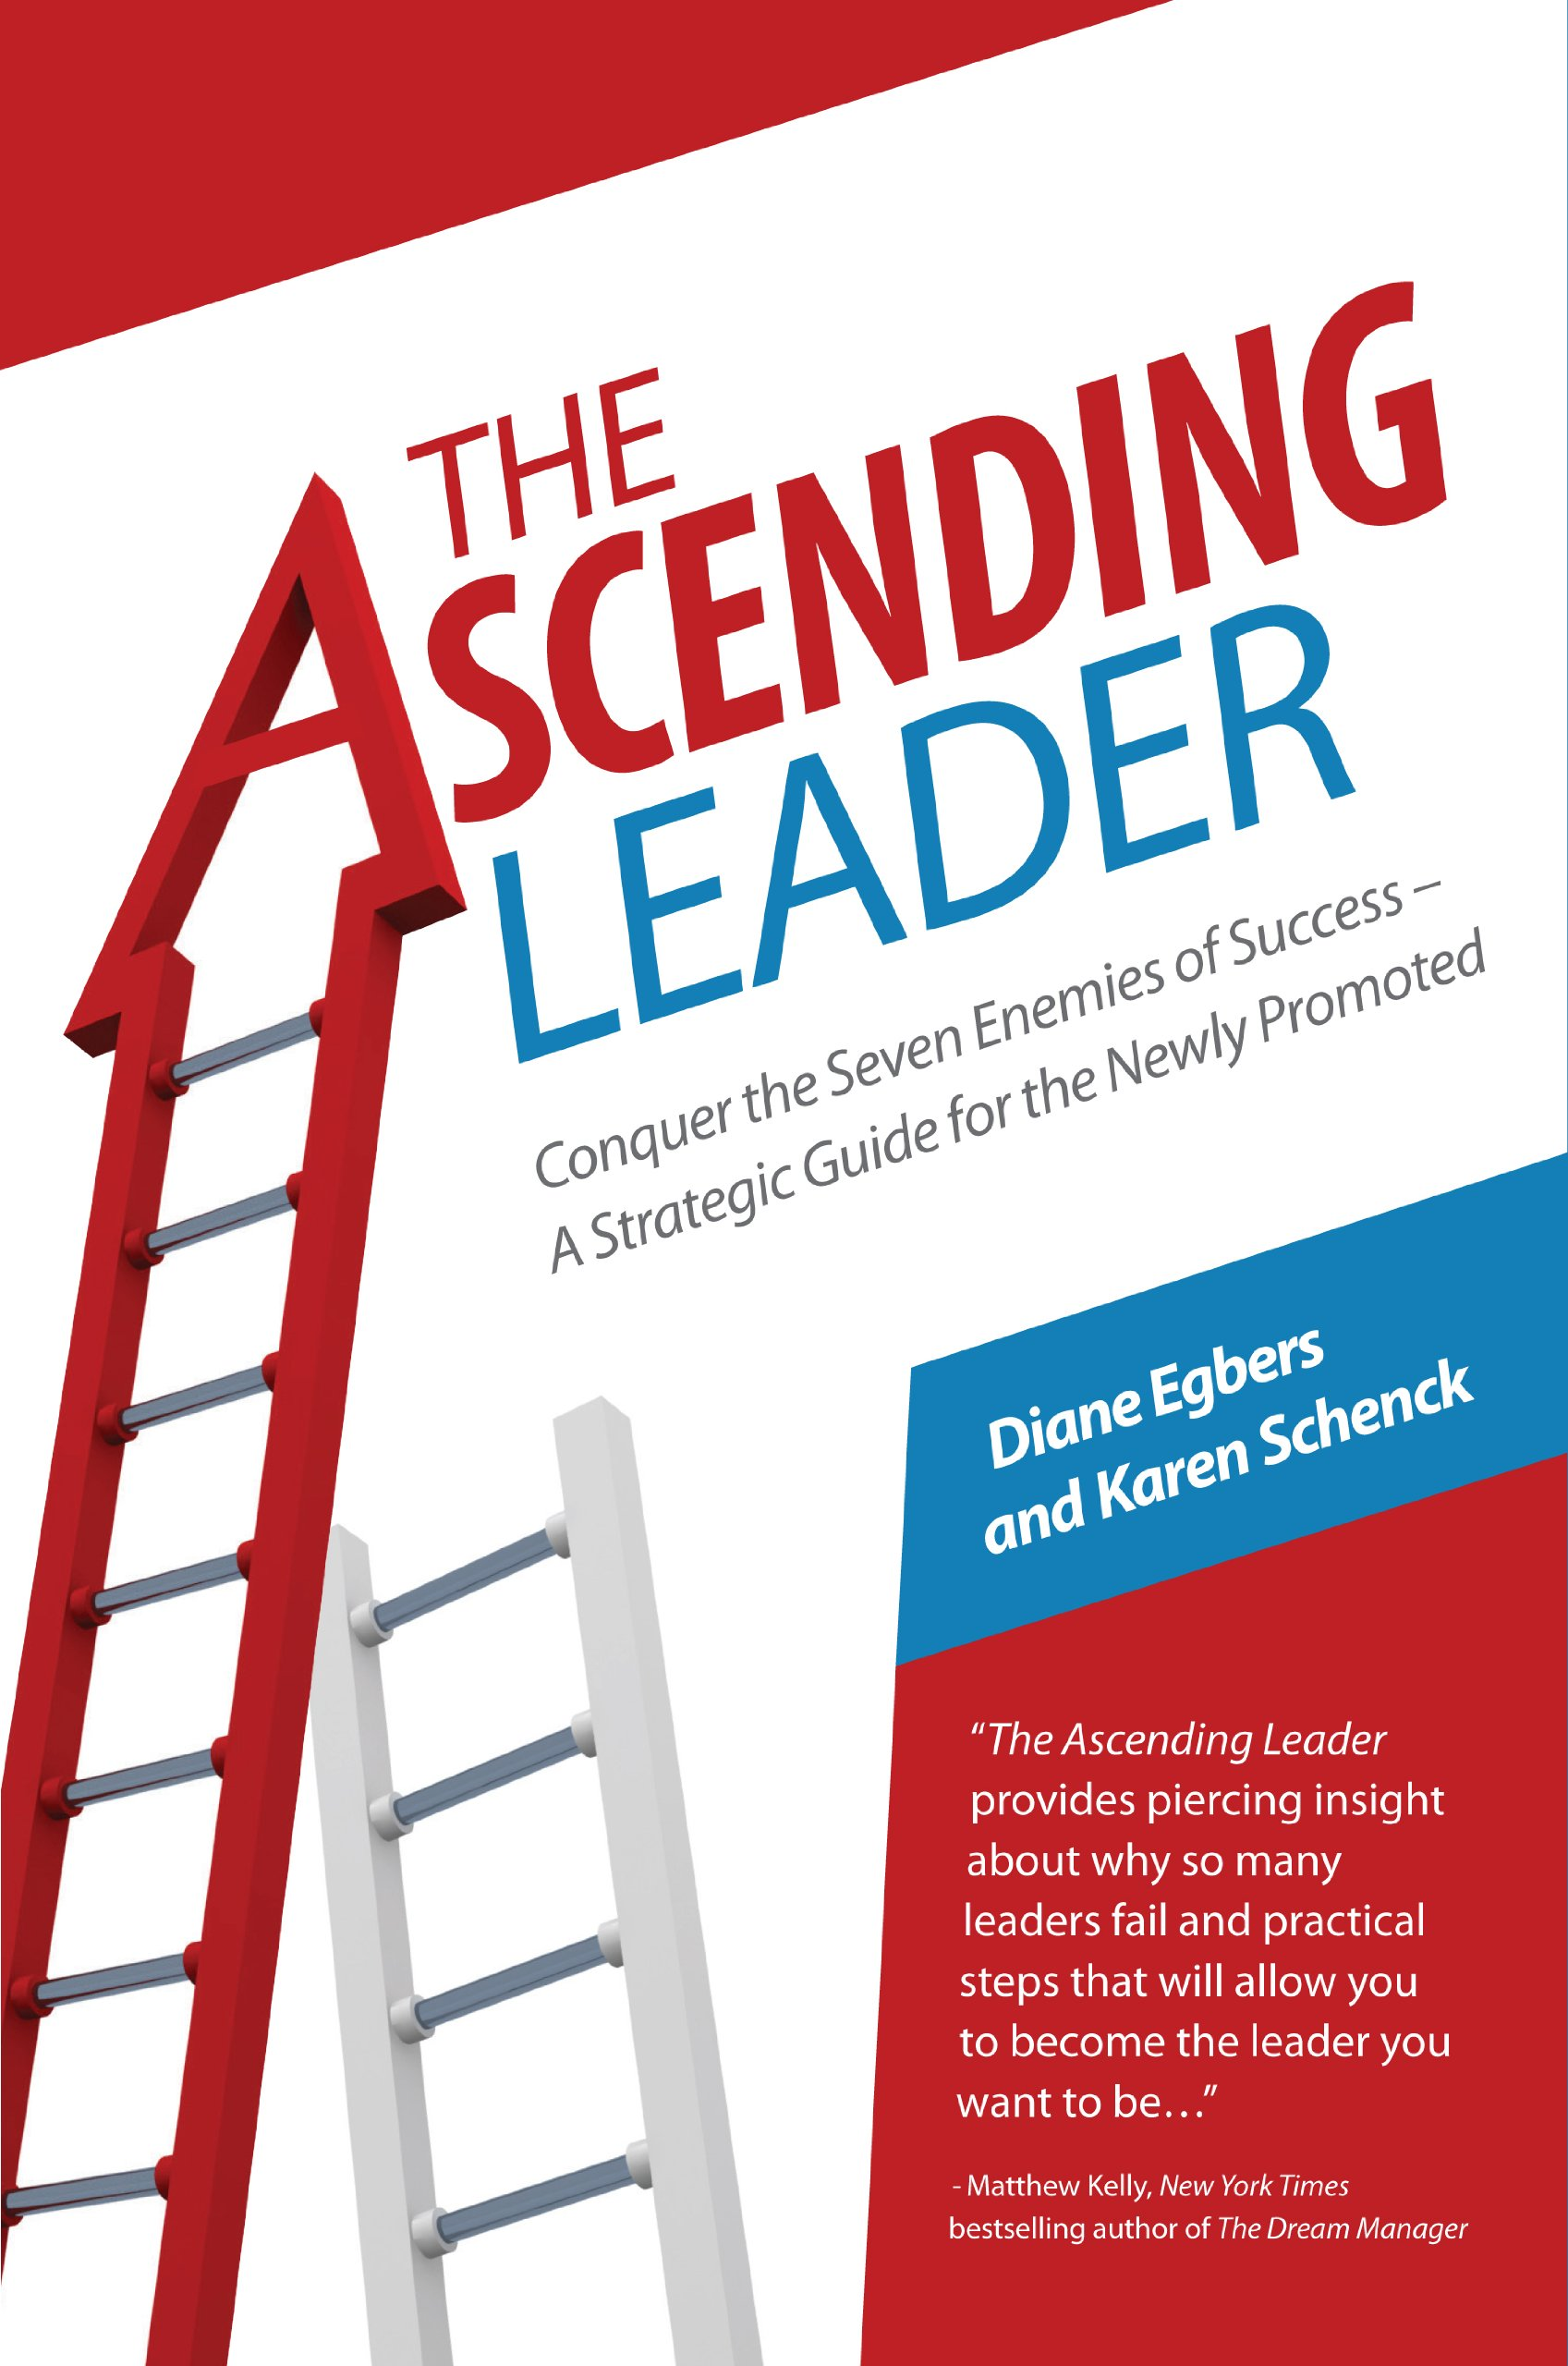 Ascending Leader Conquer the Seven Enemies of Success--A Strategic Guide for the Newly Promoted pdf